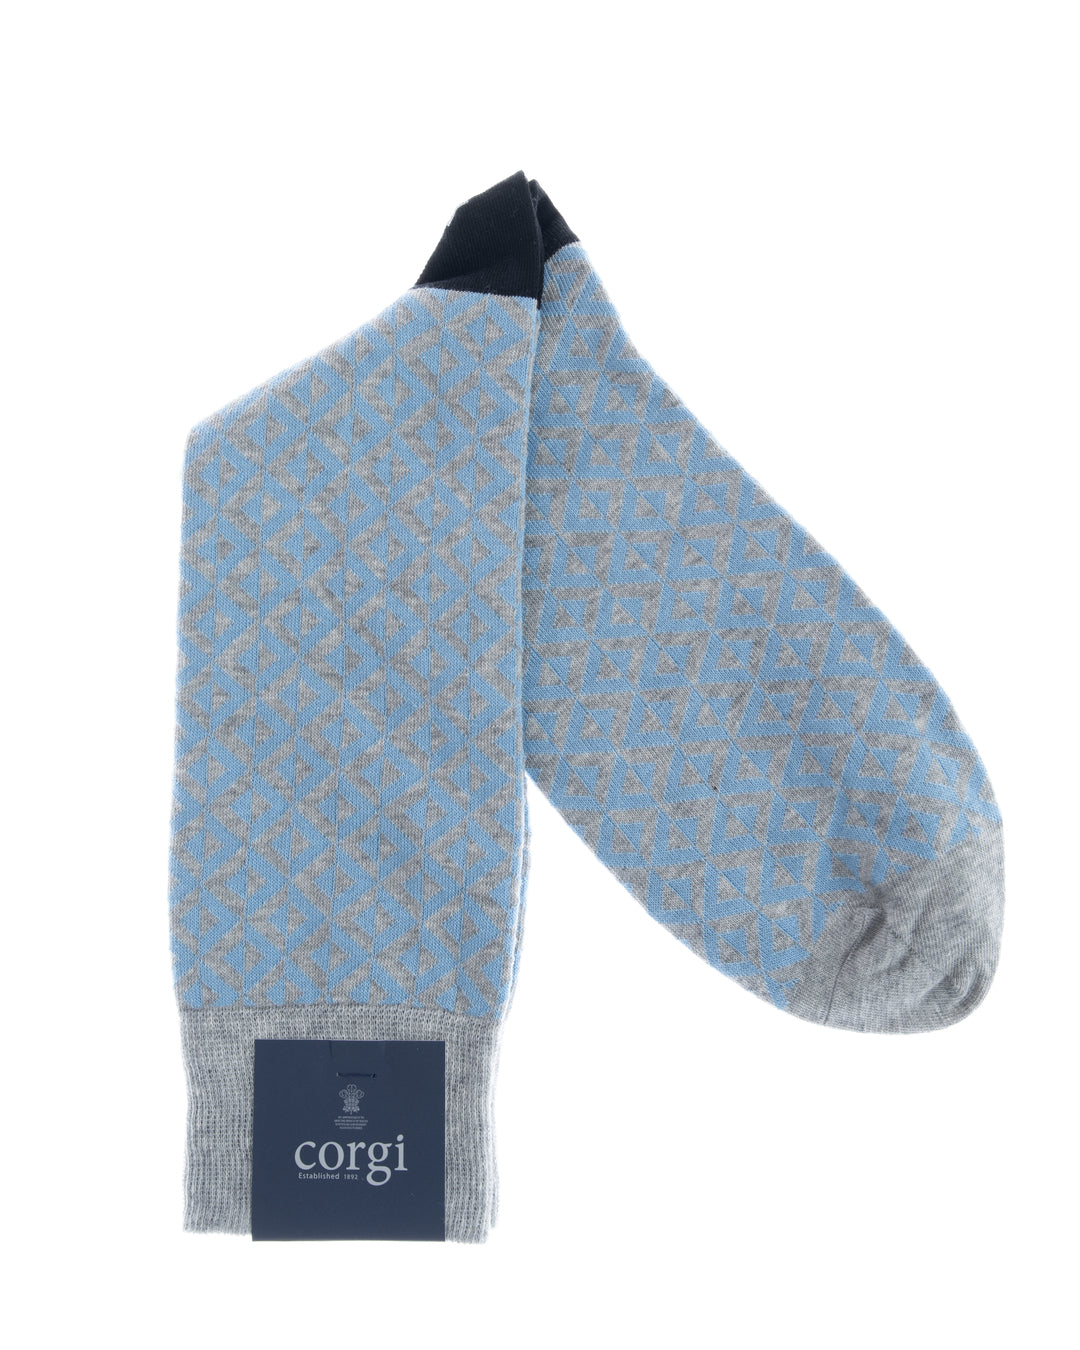 Lt.Blue & Grey Geometric Motif Cotton Socks